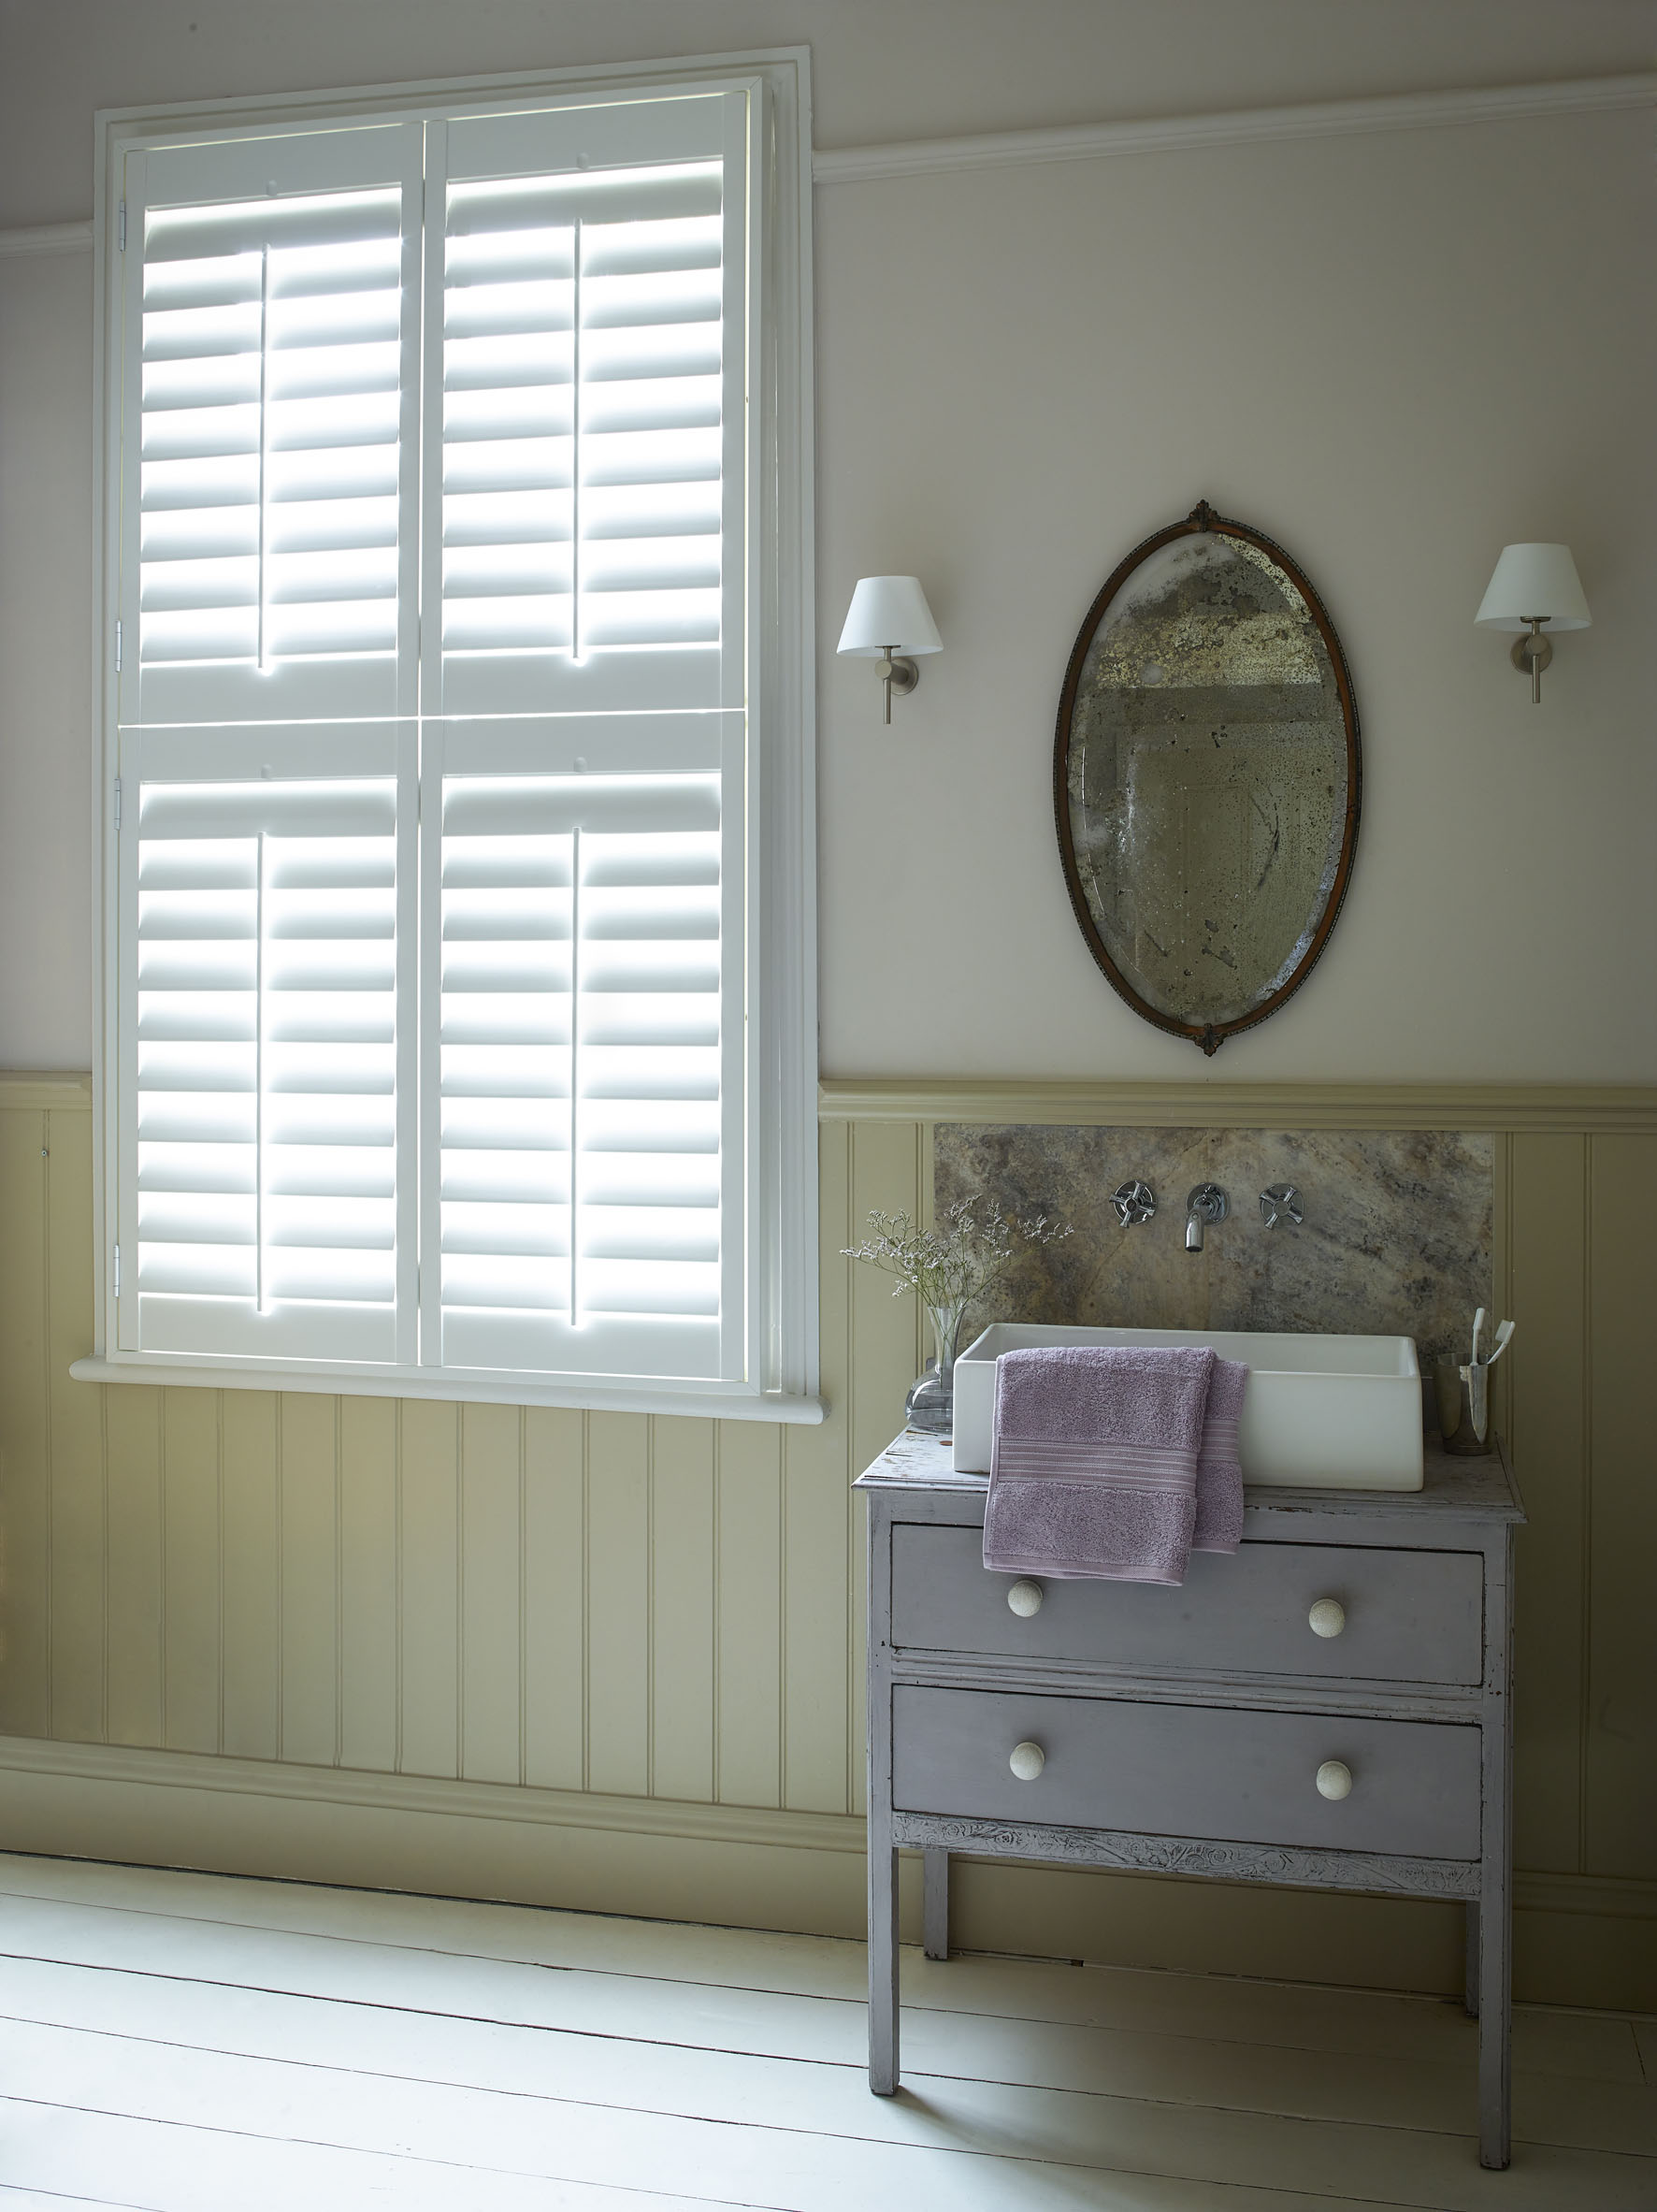 Tier on tier bathroom shutters